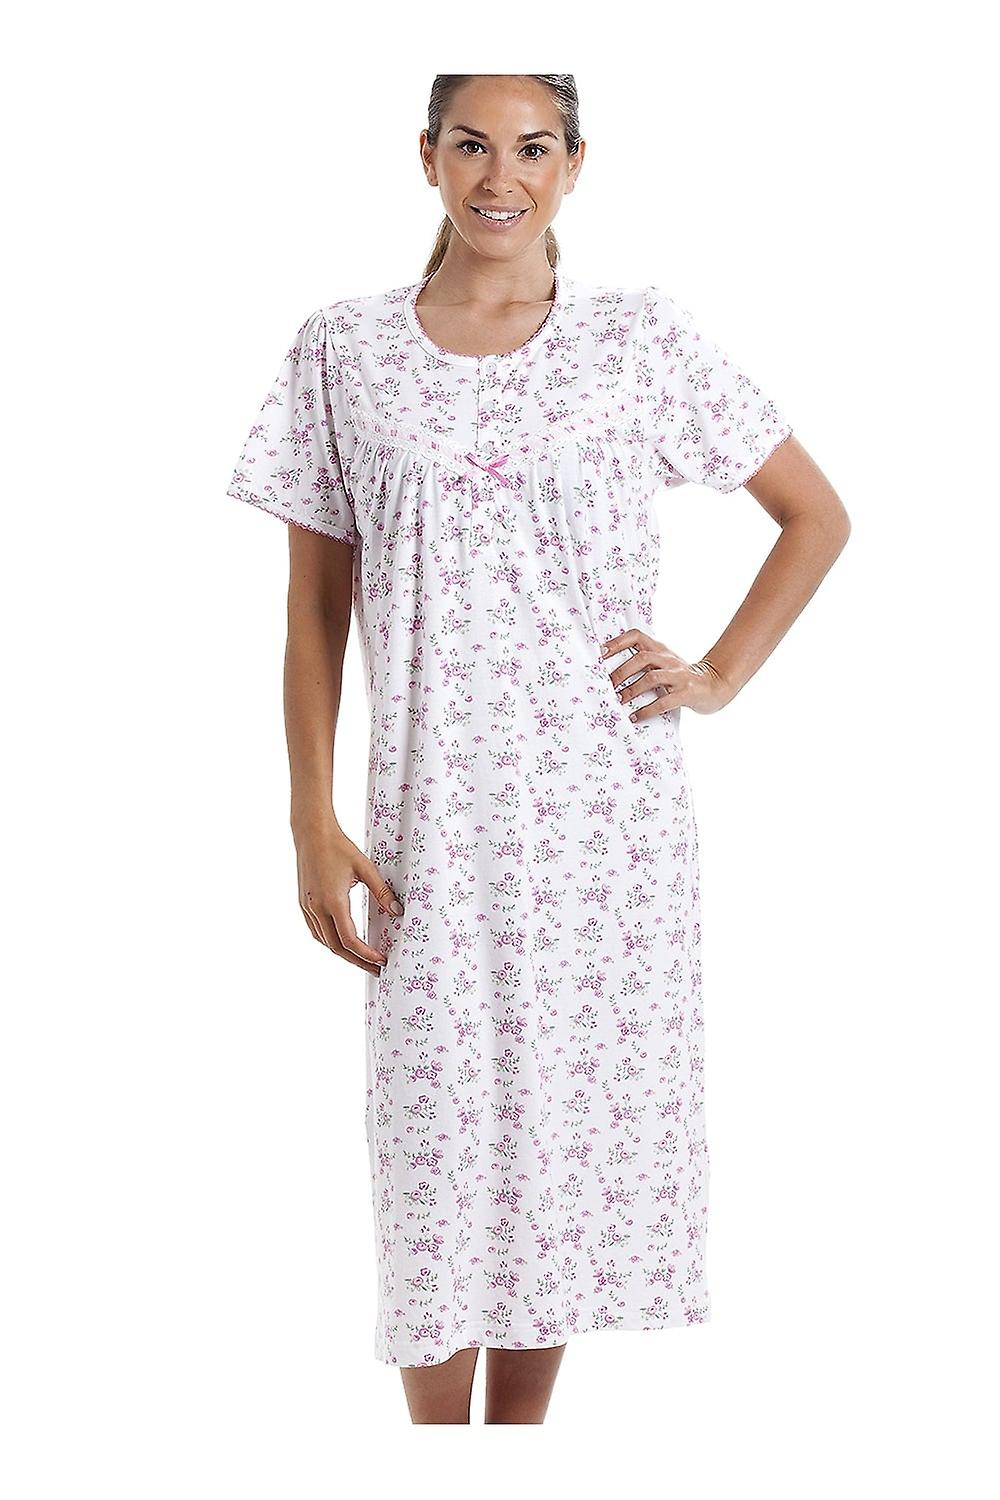 7a4a1ed40d Camille Classic Short Sleeve Pink Floral Print 100% Cotton White Nightdress